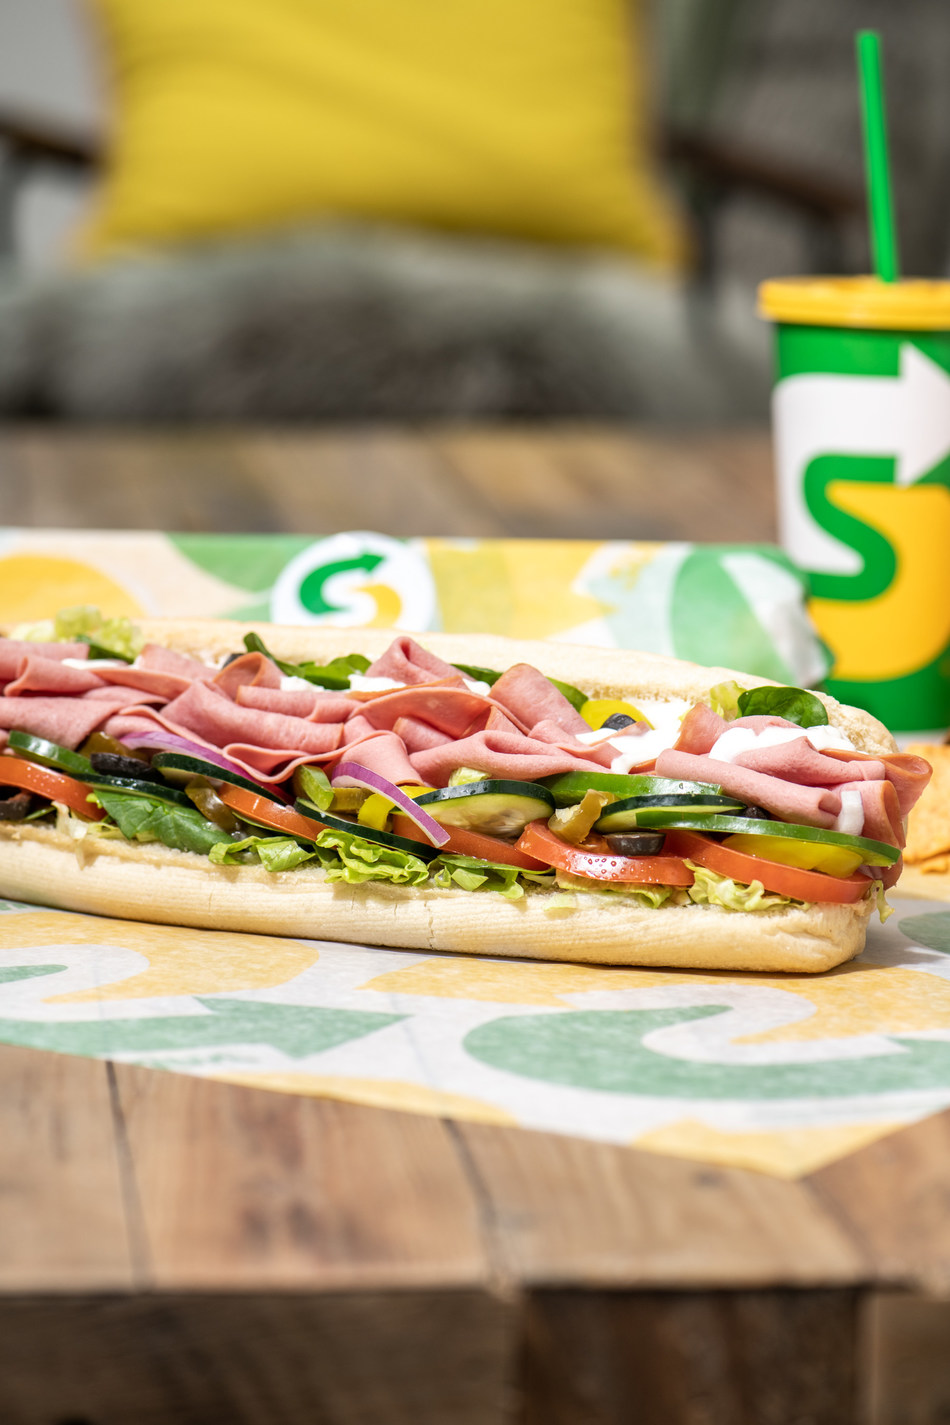 Now through May 10, Subway® Restaurants will donate a 6-inch sub to healthcare workers in the U.S. for every Subway order purchased through Postmates with a value of $15 or more.